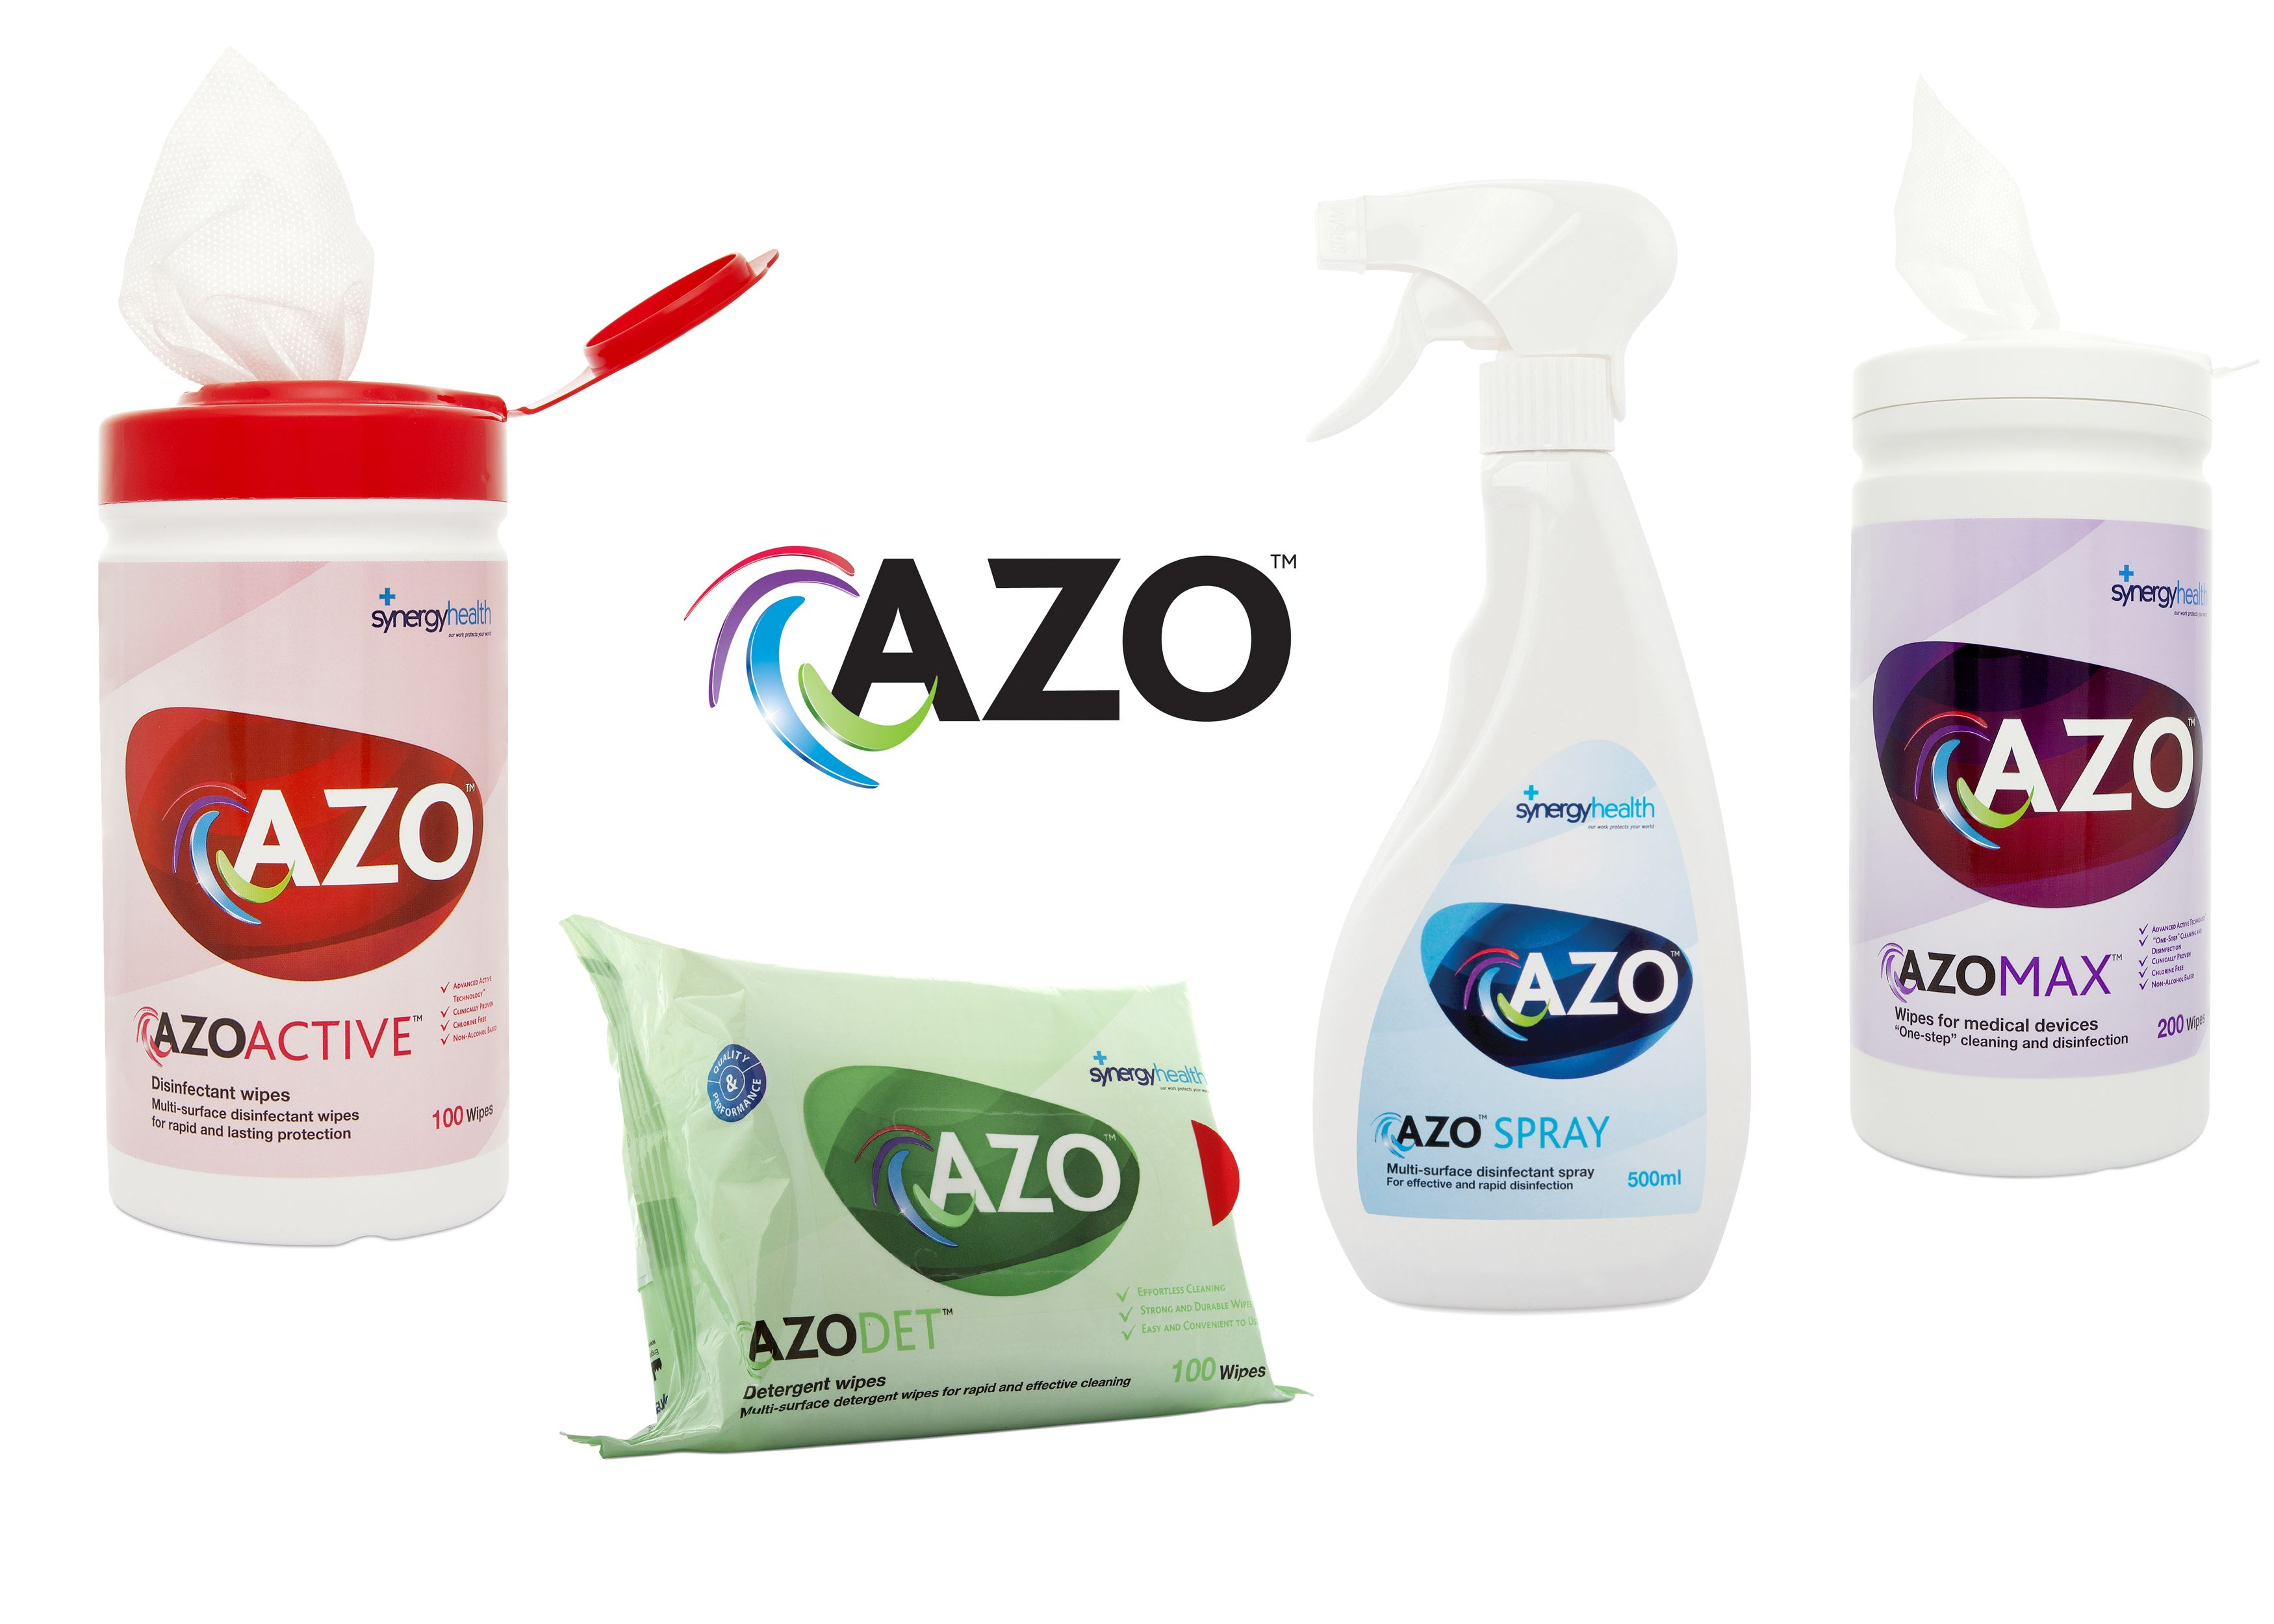 The new Generation of Azo™ Medical Device Disinfectant Wipes at Cleanroomshop.com